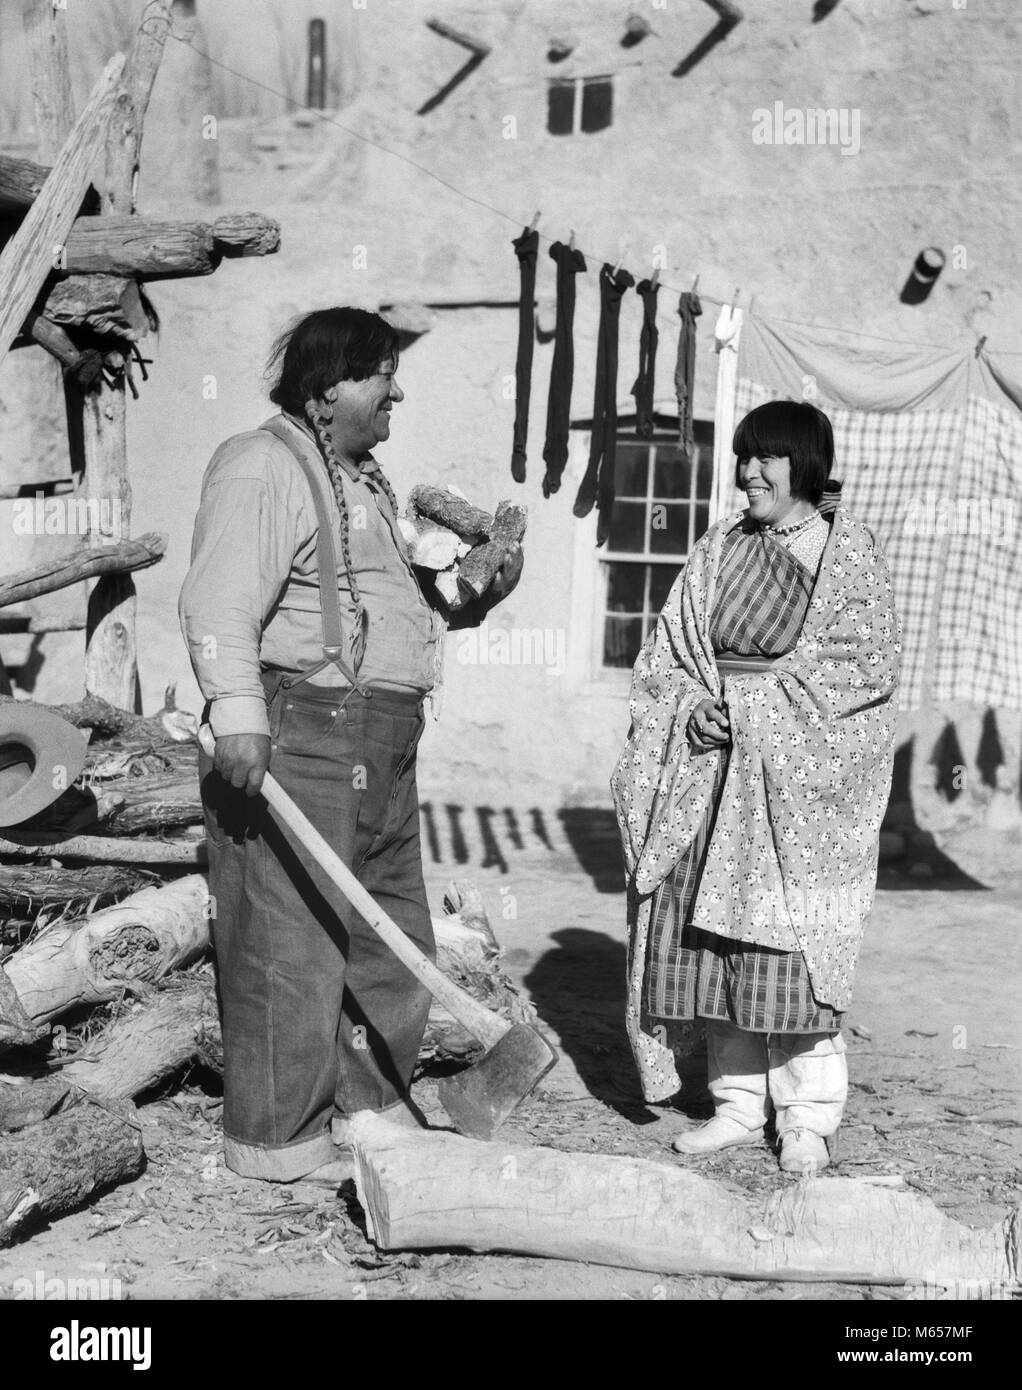 1930s NATIVE AMERICAN COUPLE WOMAN IN TYPICAL COSTUME MAN IN JEANS CHOPPING FIREWOOD WITH AX SAN ILDEFONSO PUEBLO - Stock Image